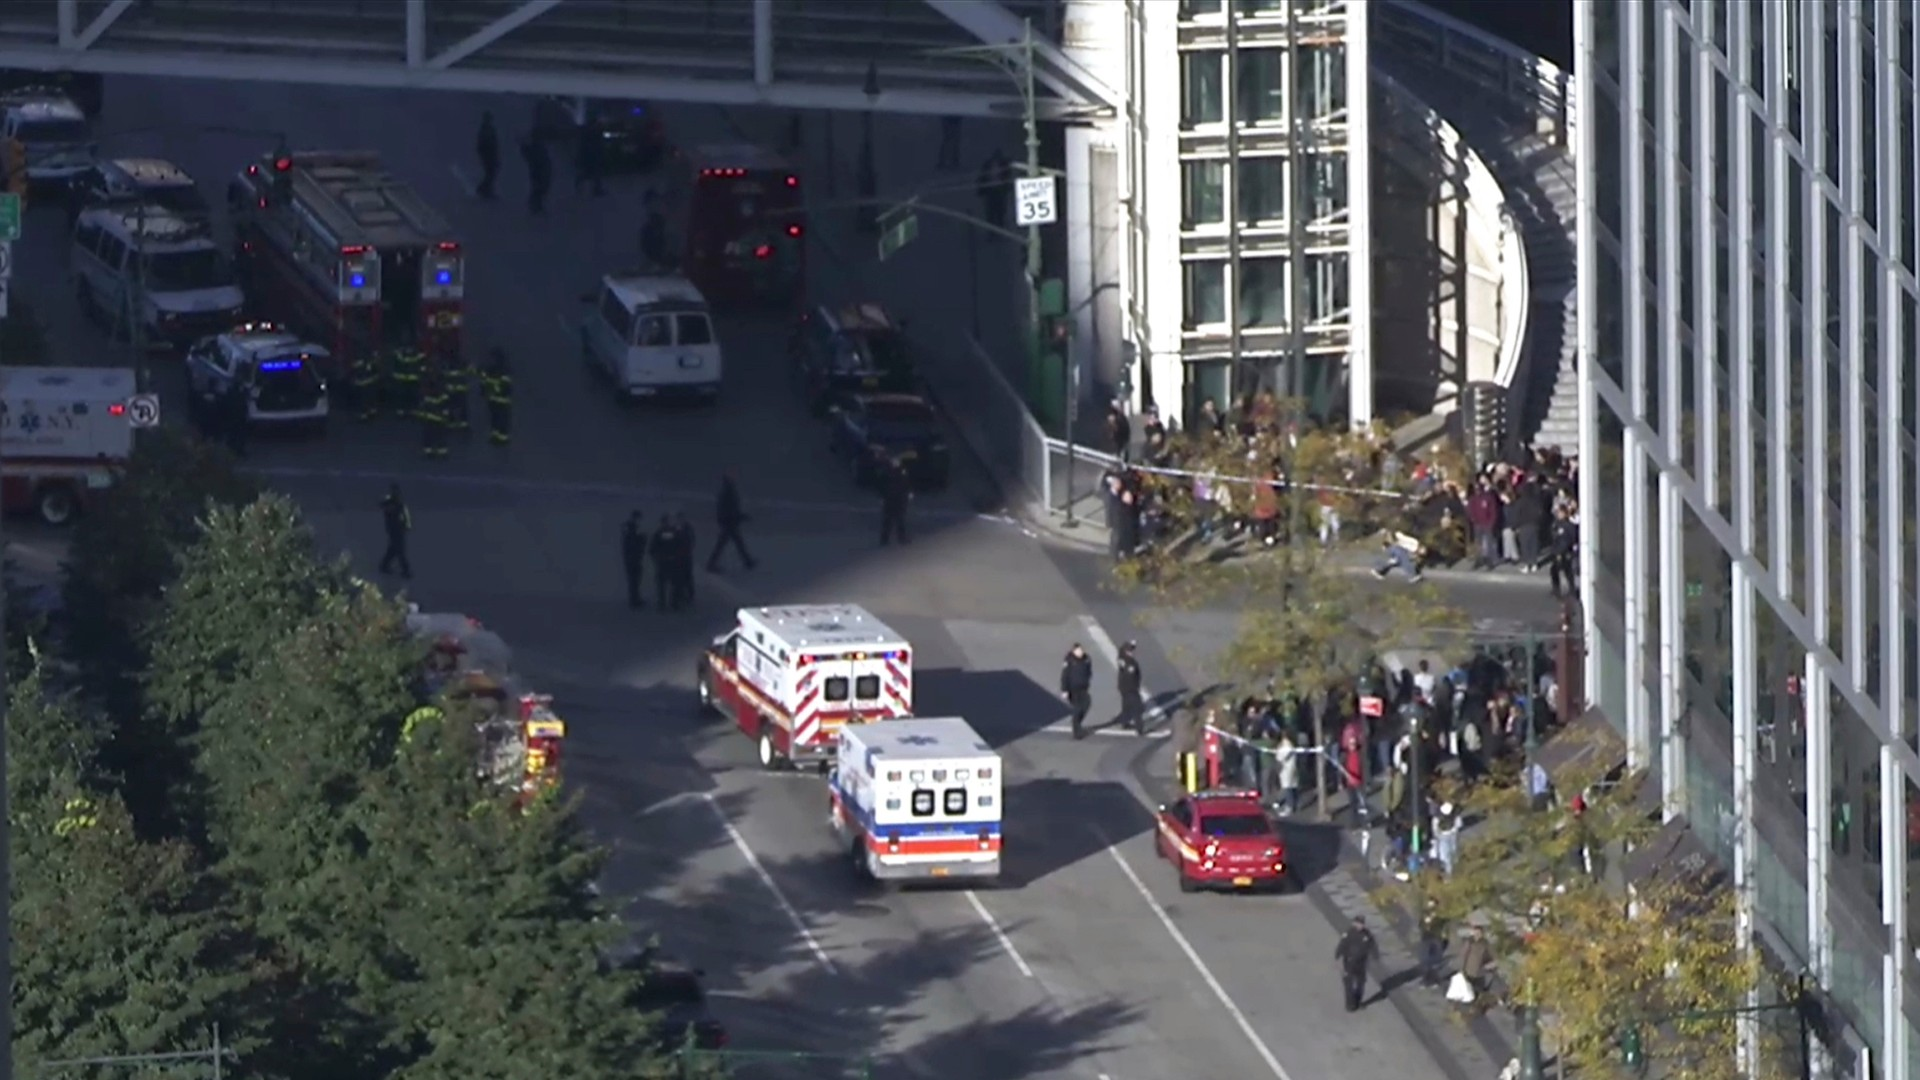 Multiple fatalities reported in incident near World Trade Center